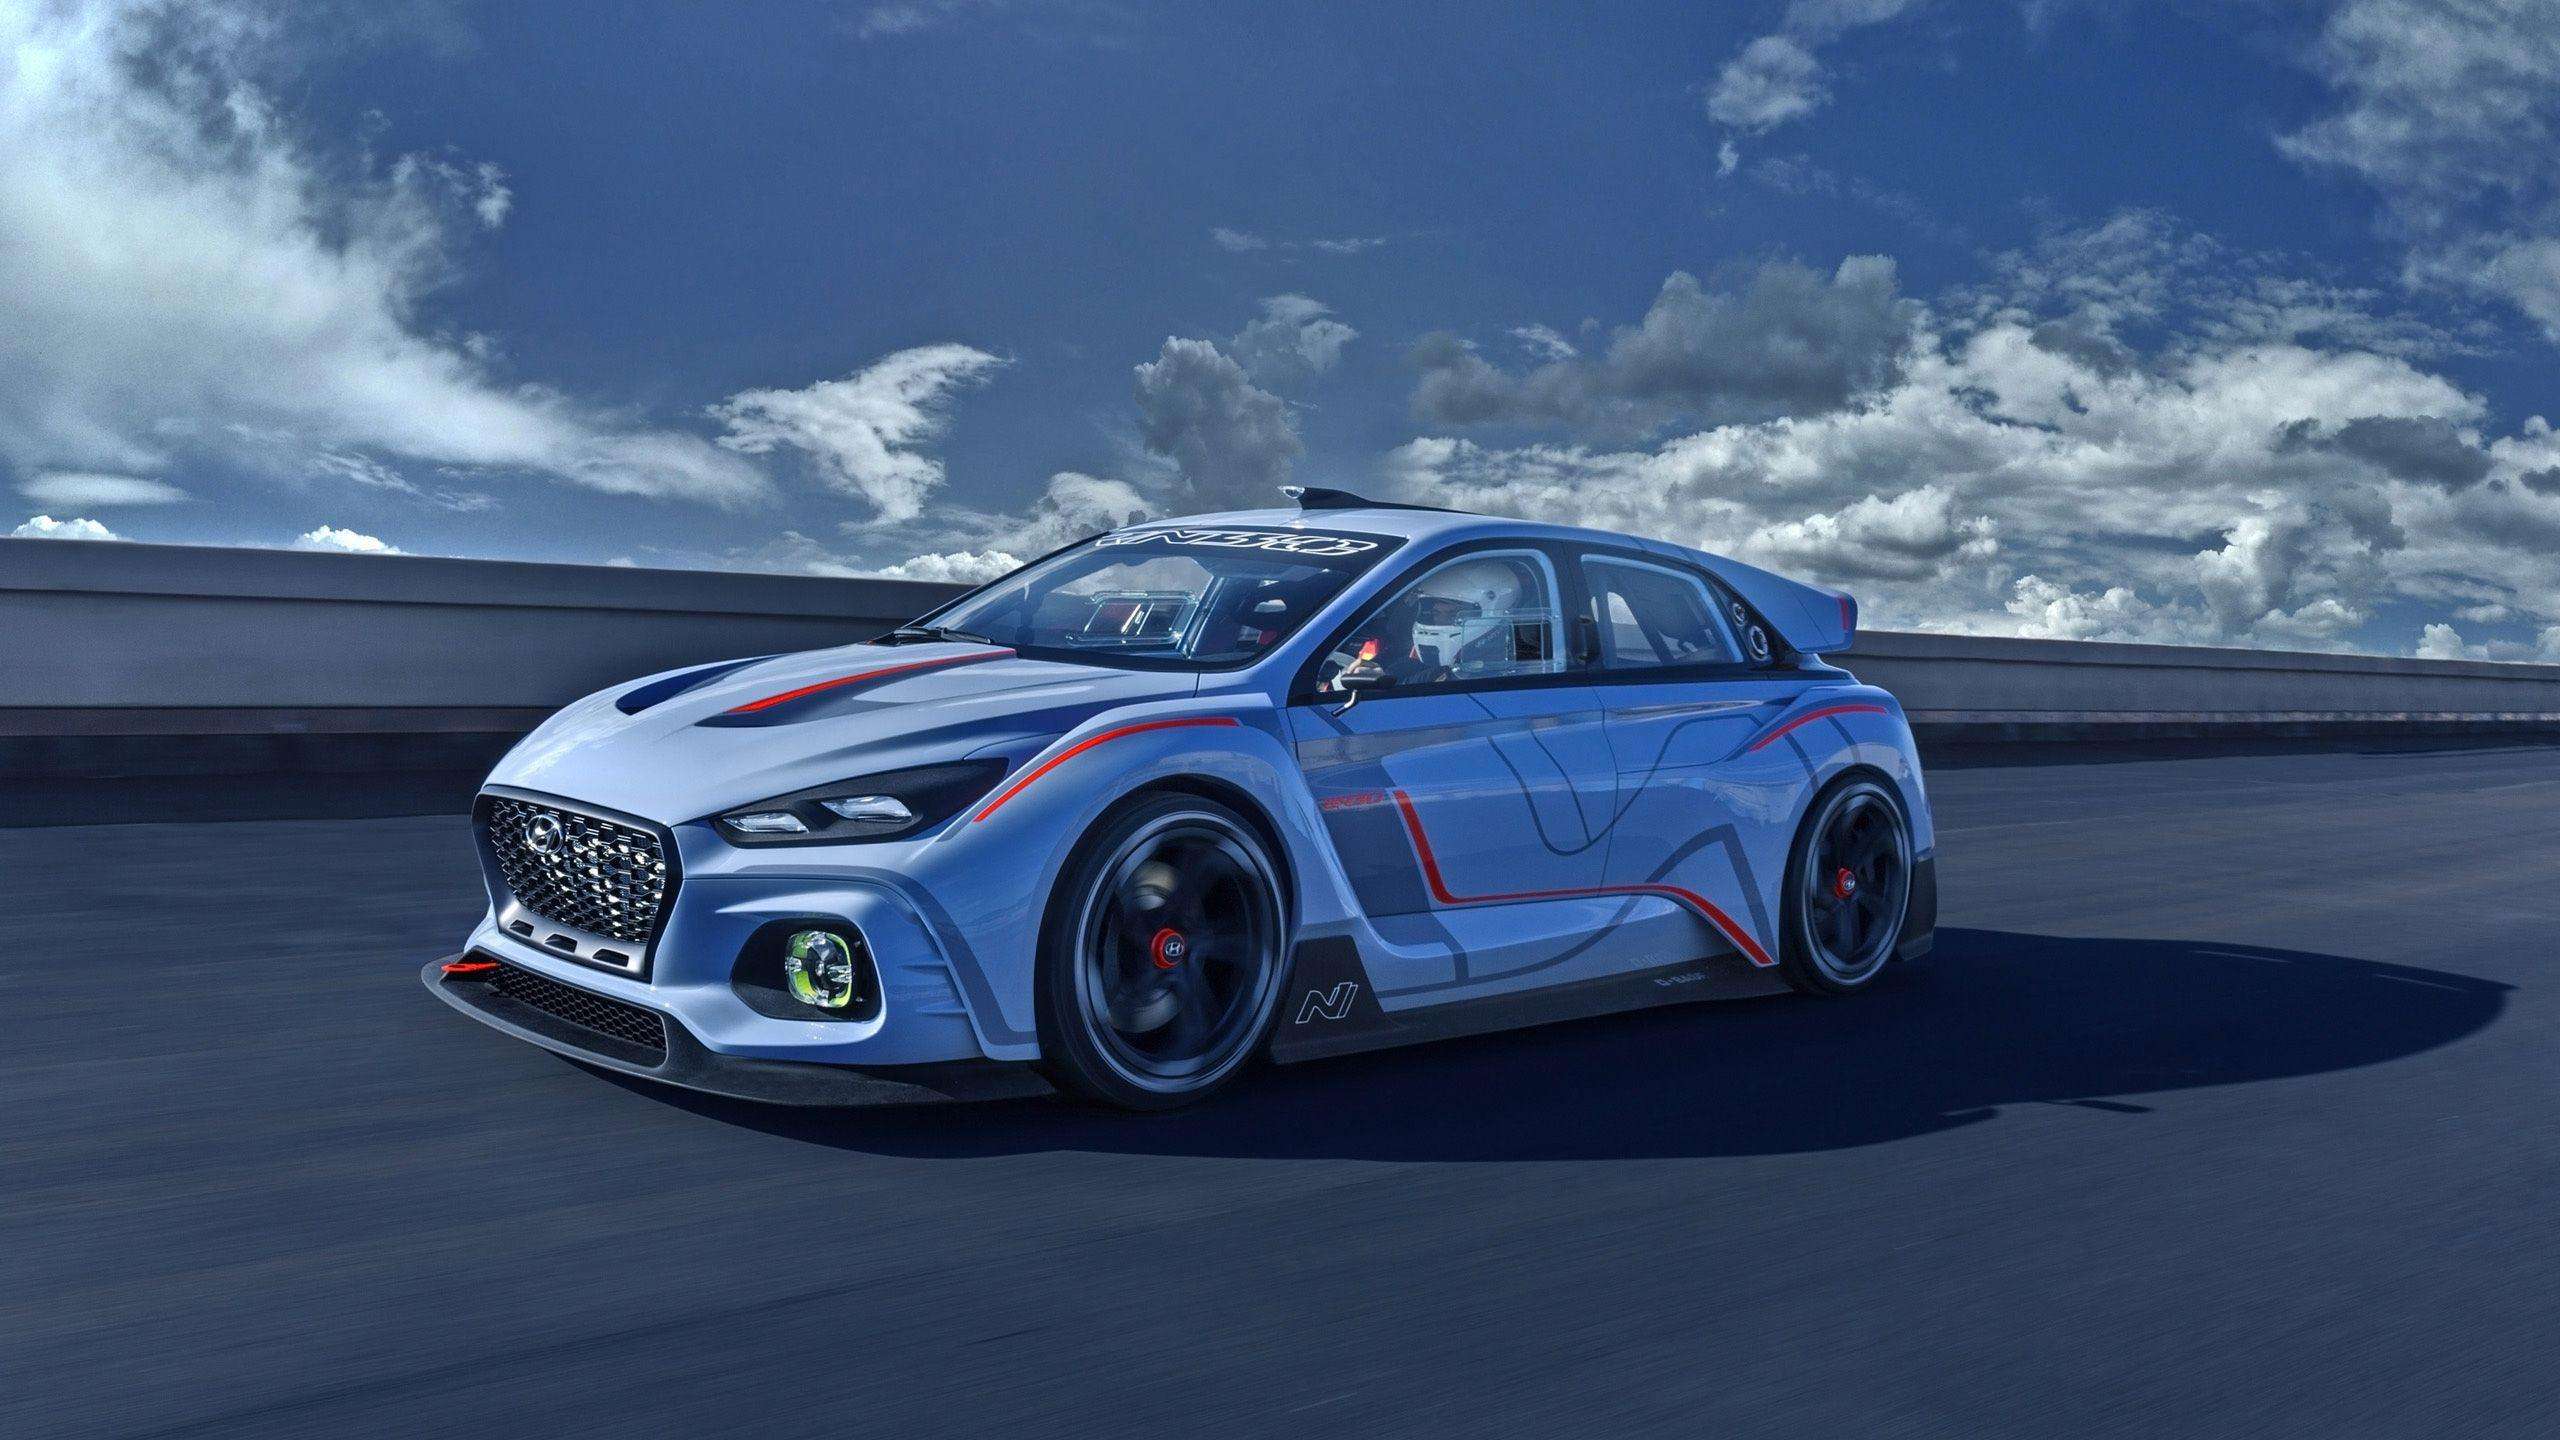 Hyundai Car Wallpapers,Pictures